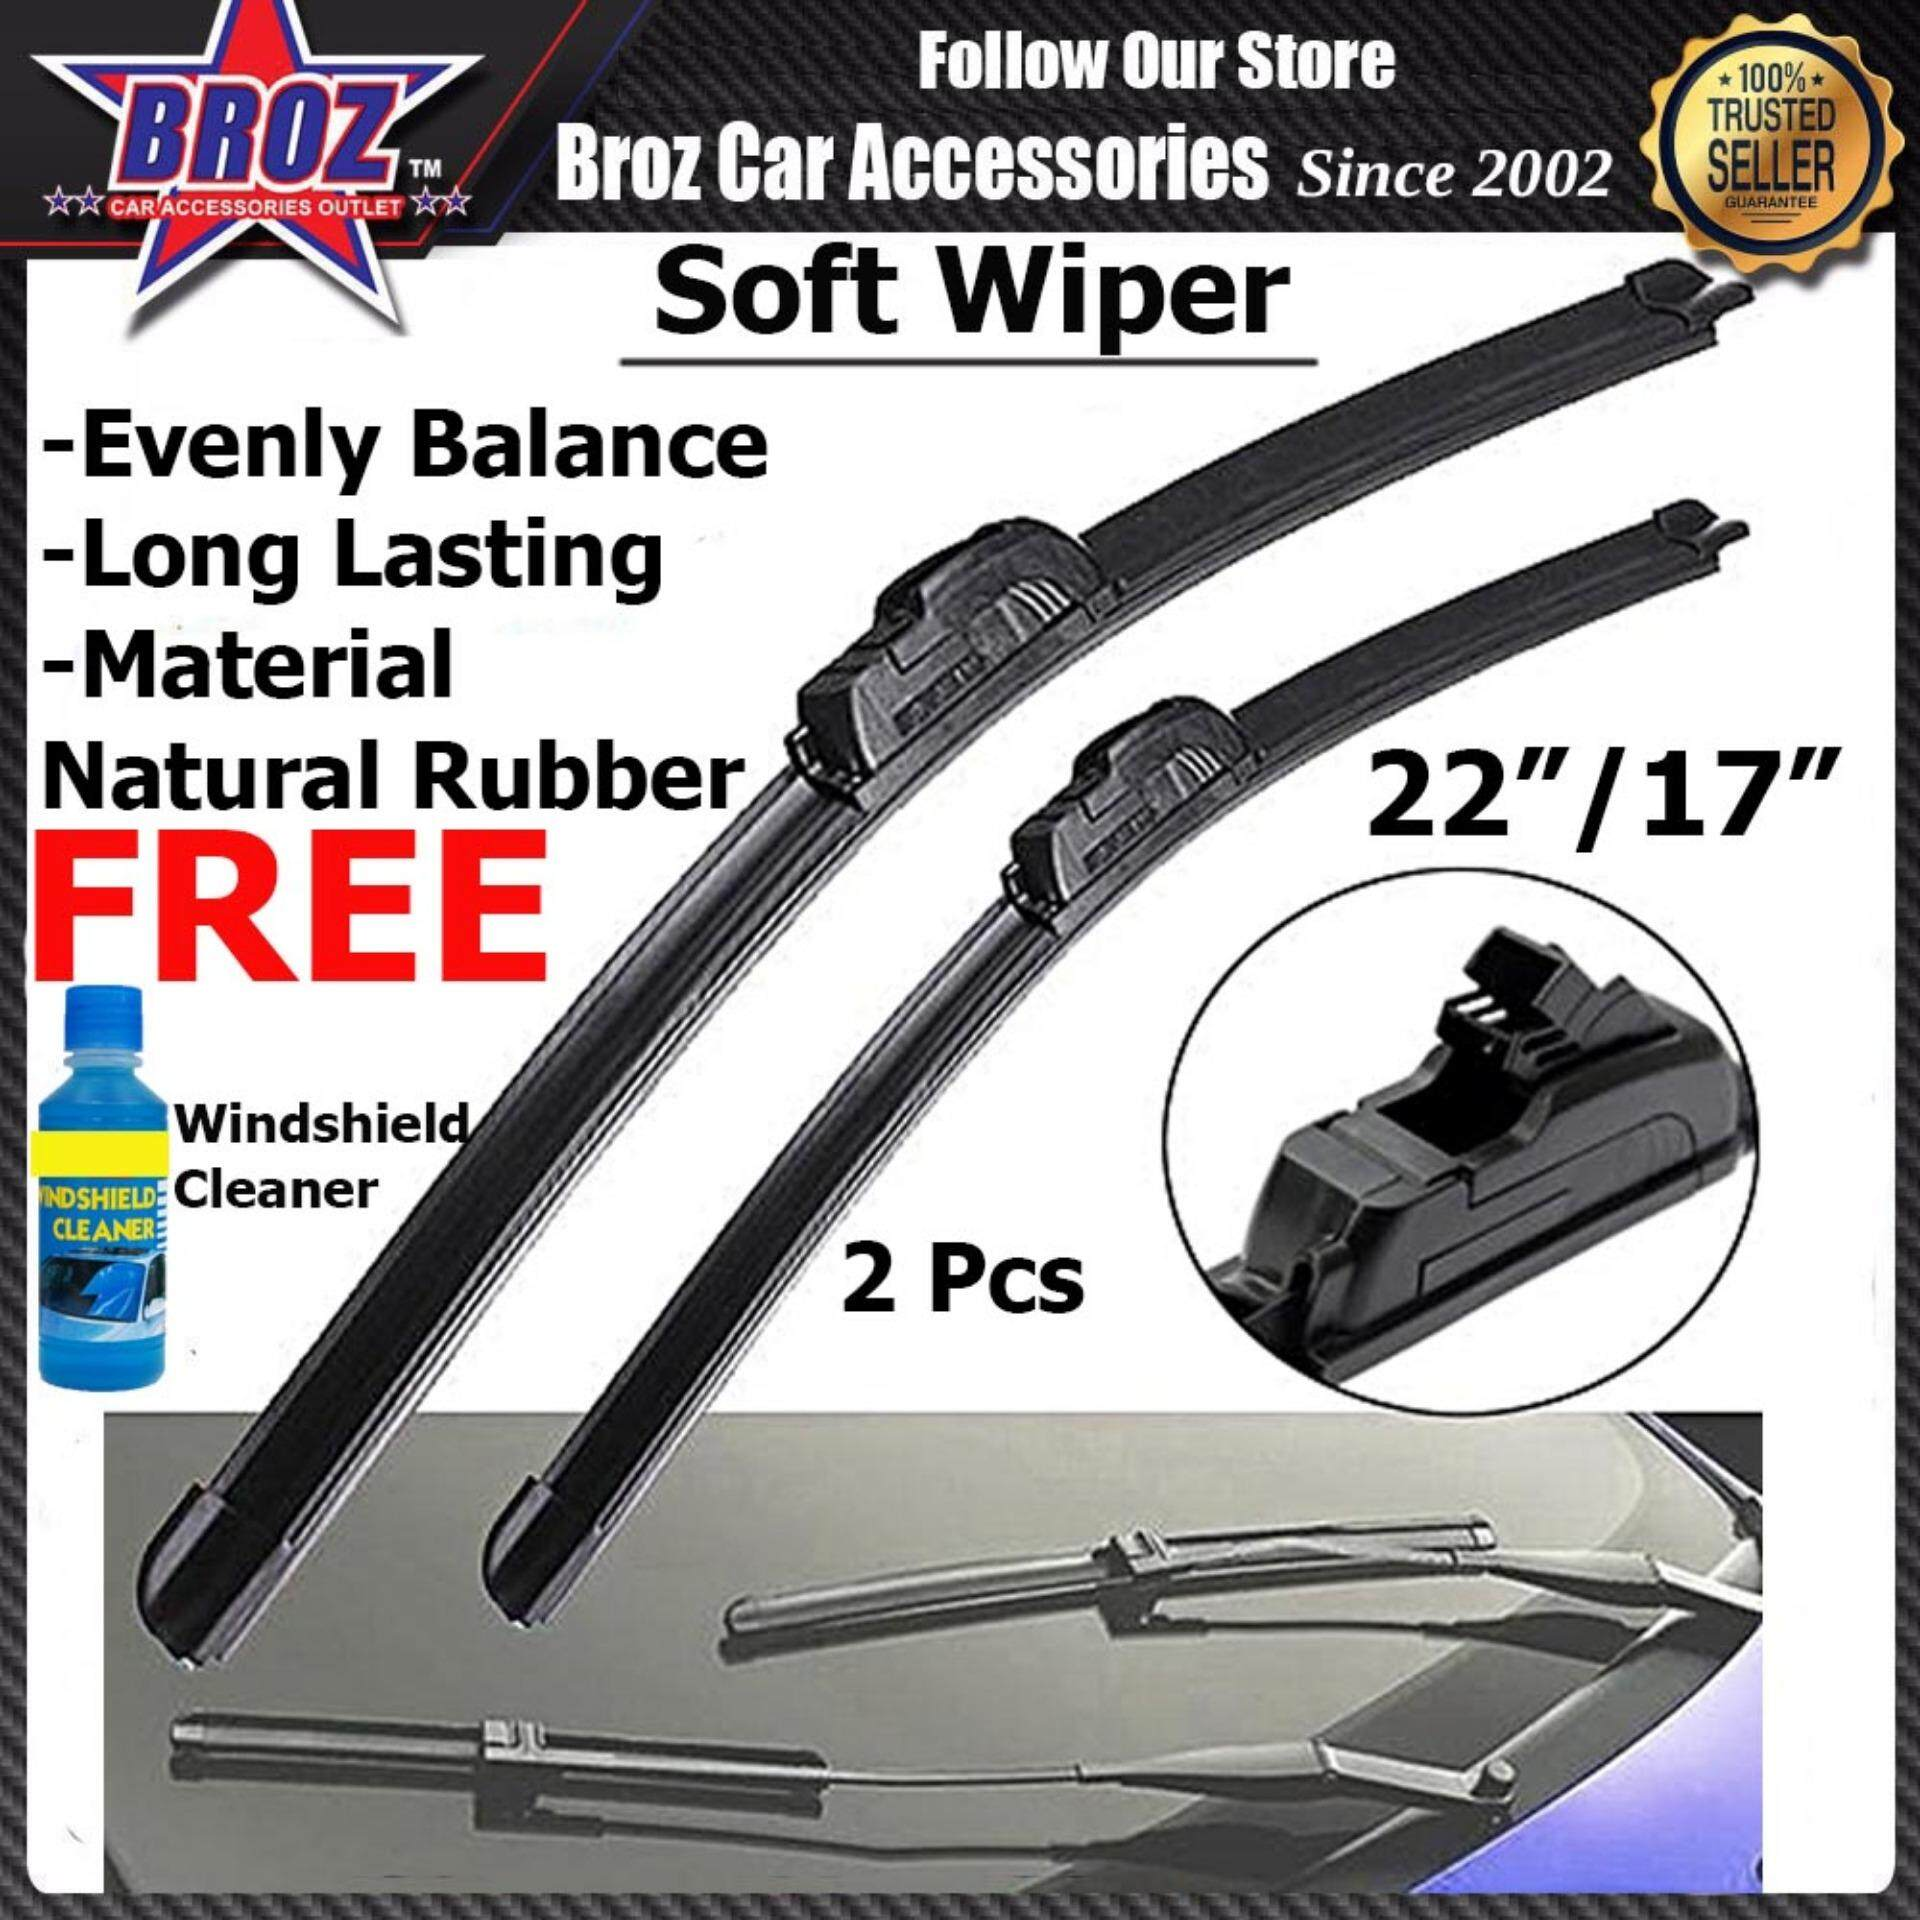 "Saga Fl/BLM/FLX Suzuki Swift Mazda 2 2015-2019 Car Natural Rubber Soft Wiper 22""/17"" 2pcs"